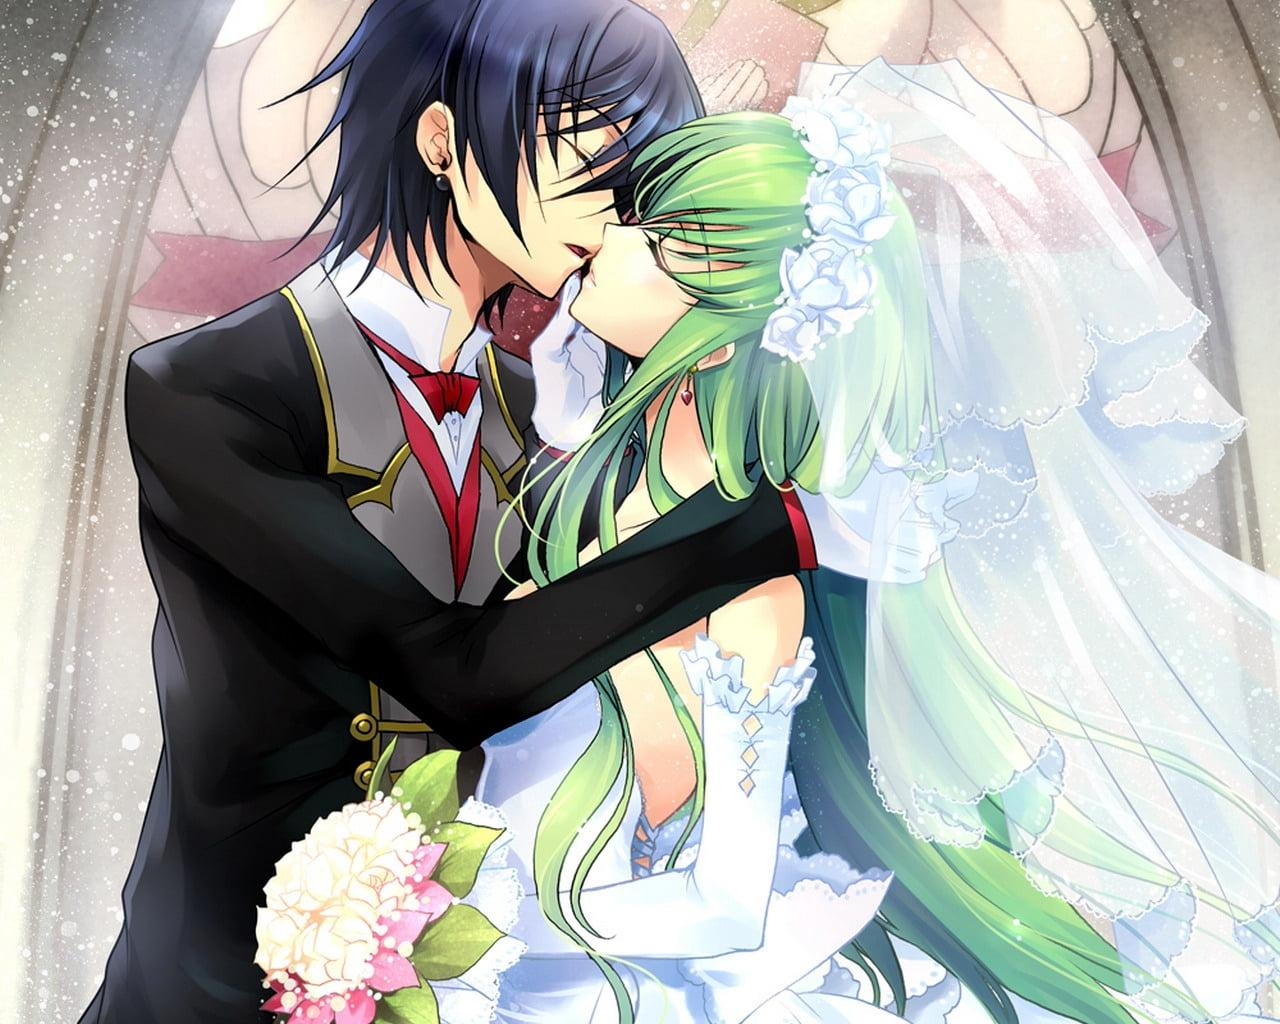 Anime Boy And Girl Kissing Wallpapers - Wallpaper Cave